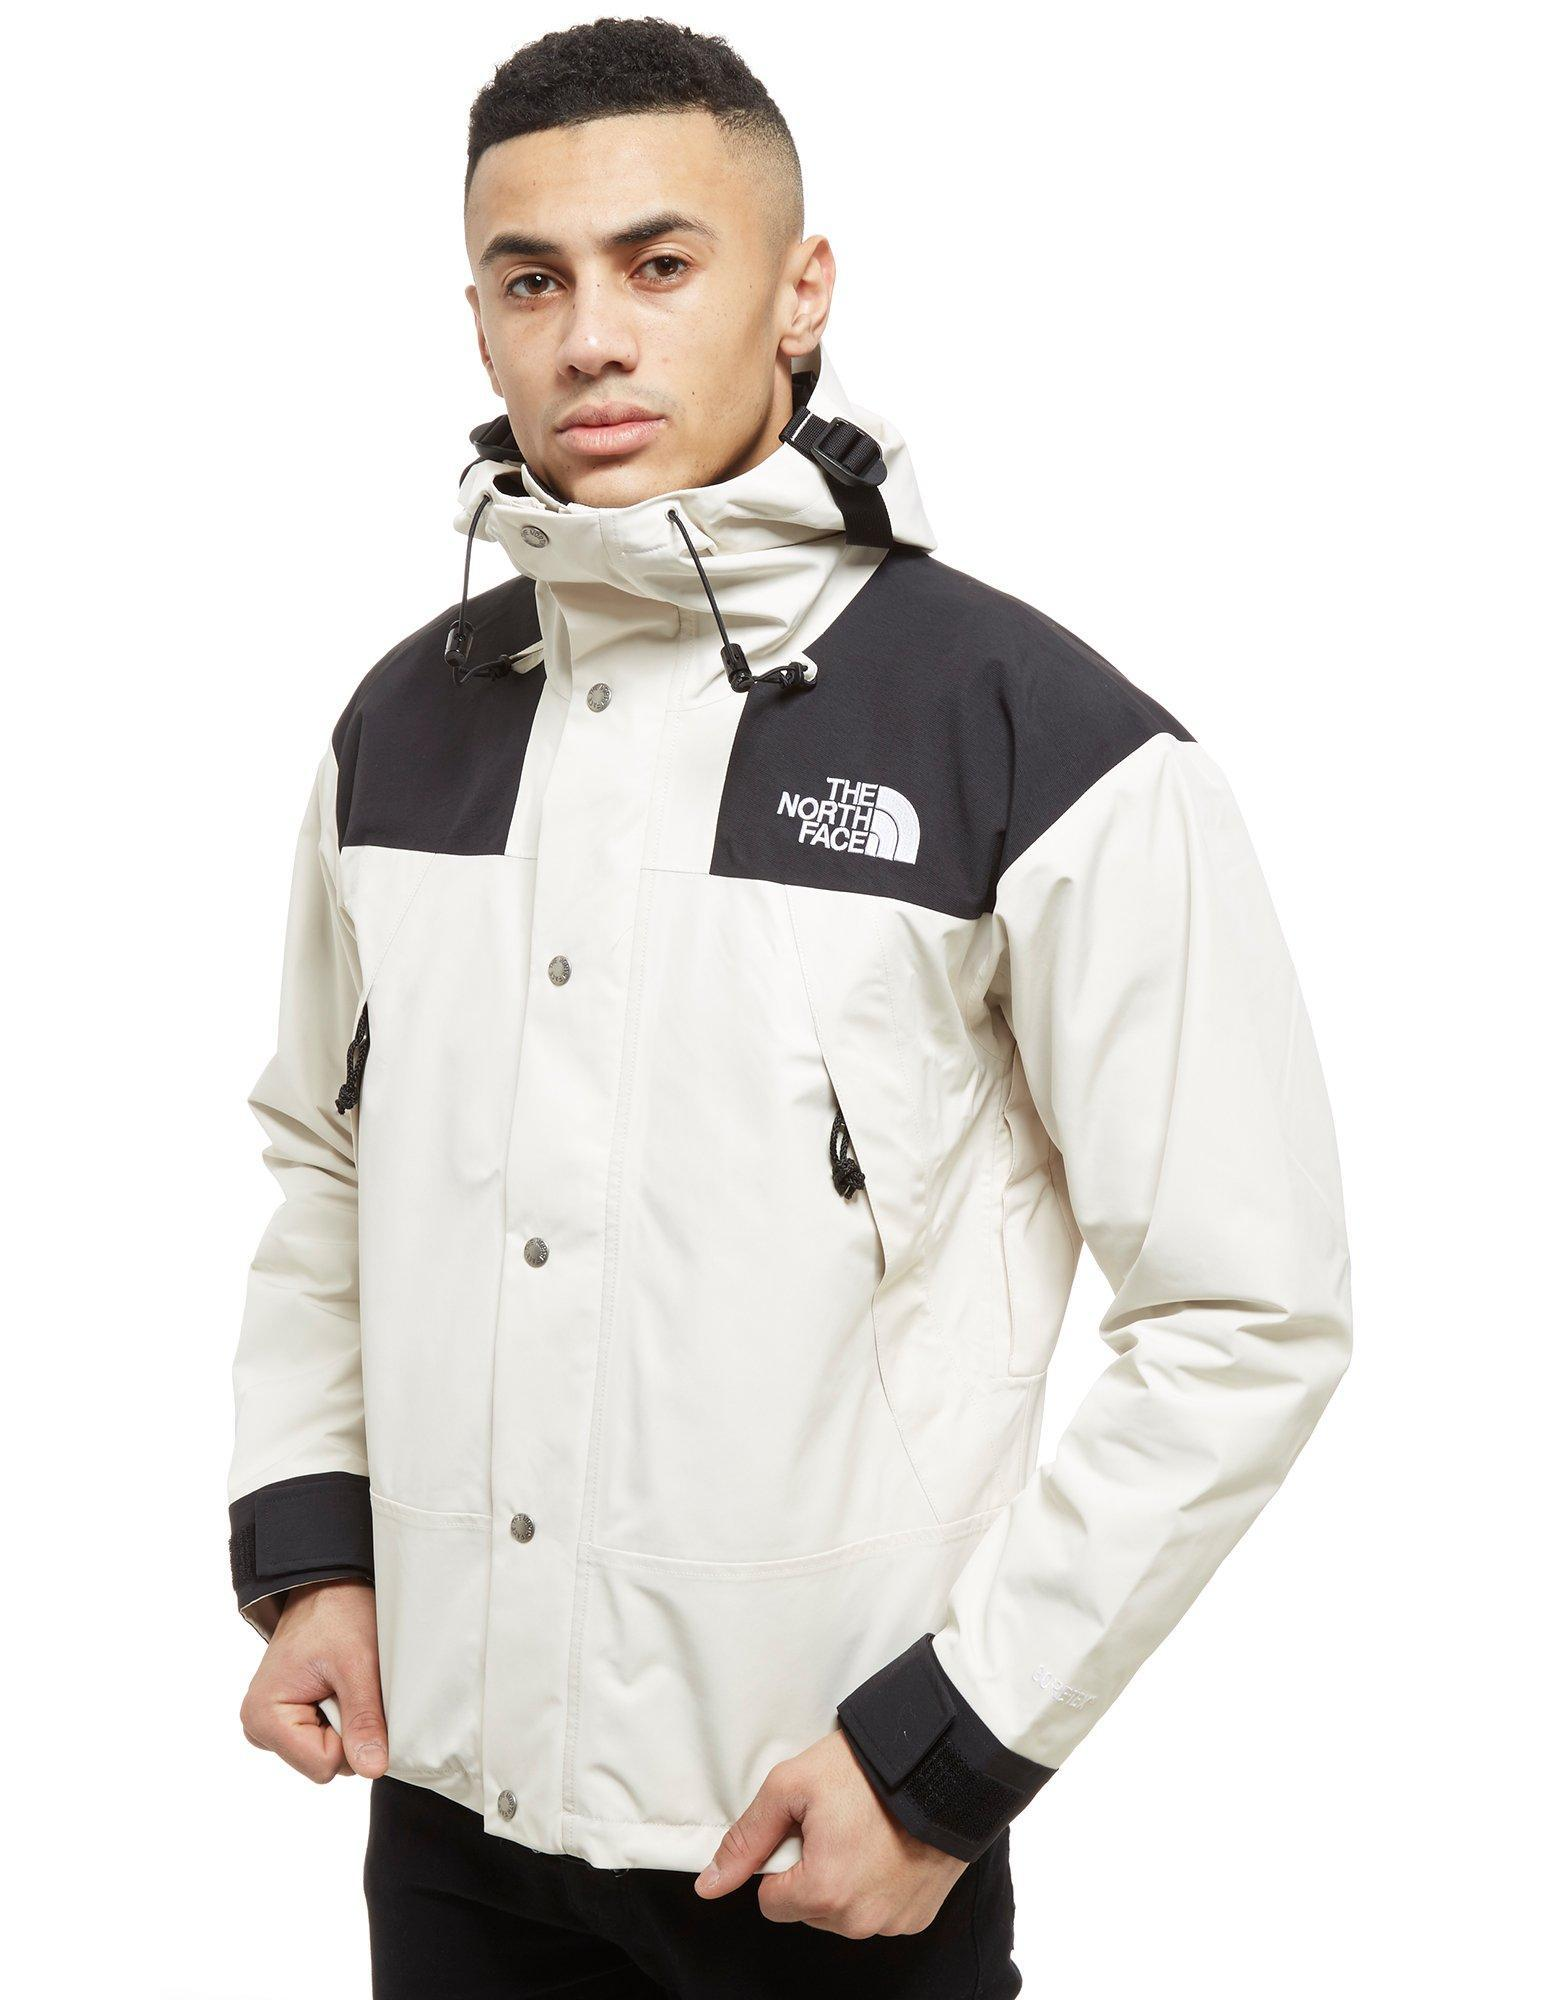 6a1ecd38e The North Face 1990 Mountain Gore-tex Jacket in White for Men - Lyst